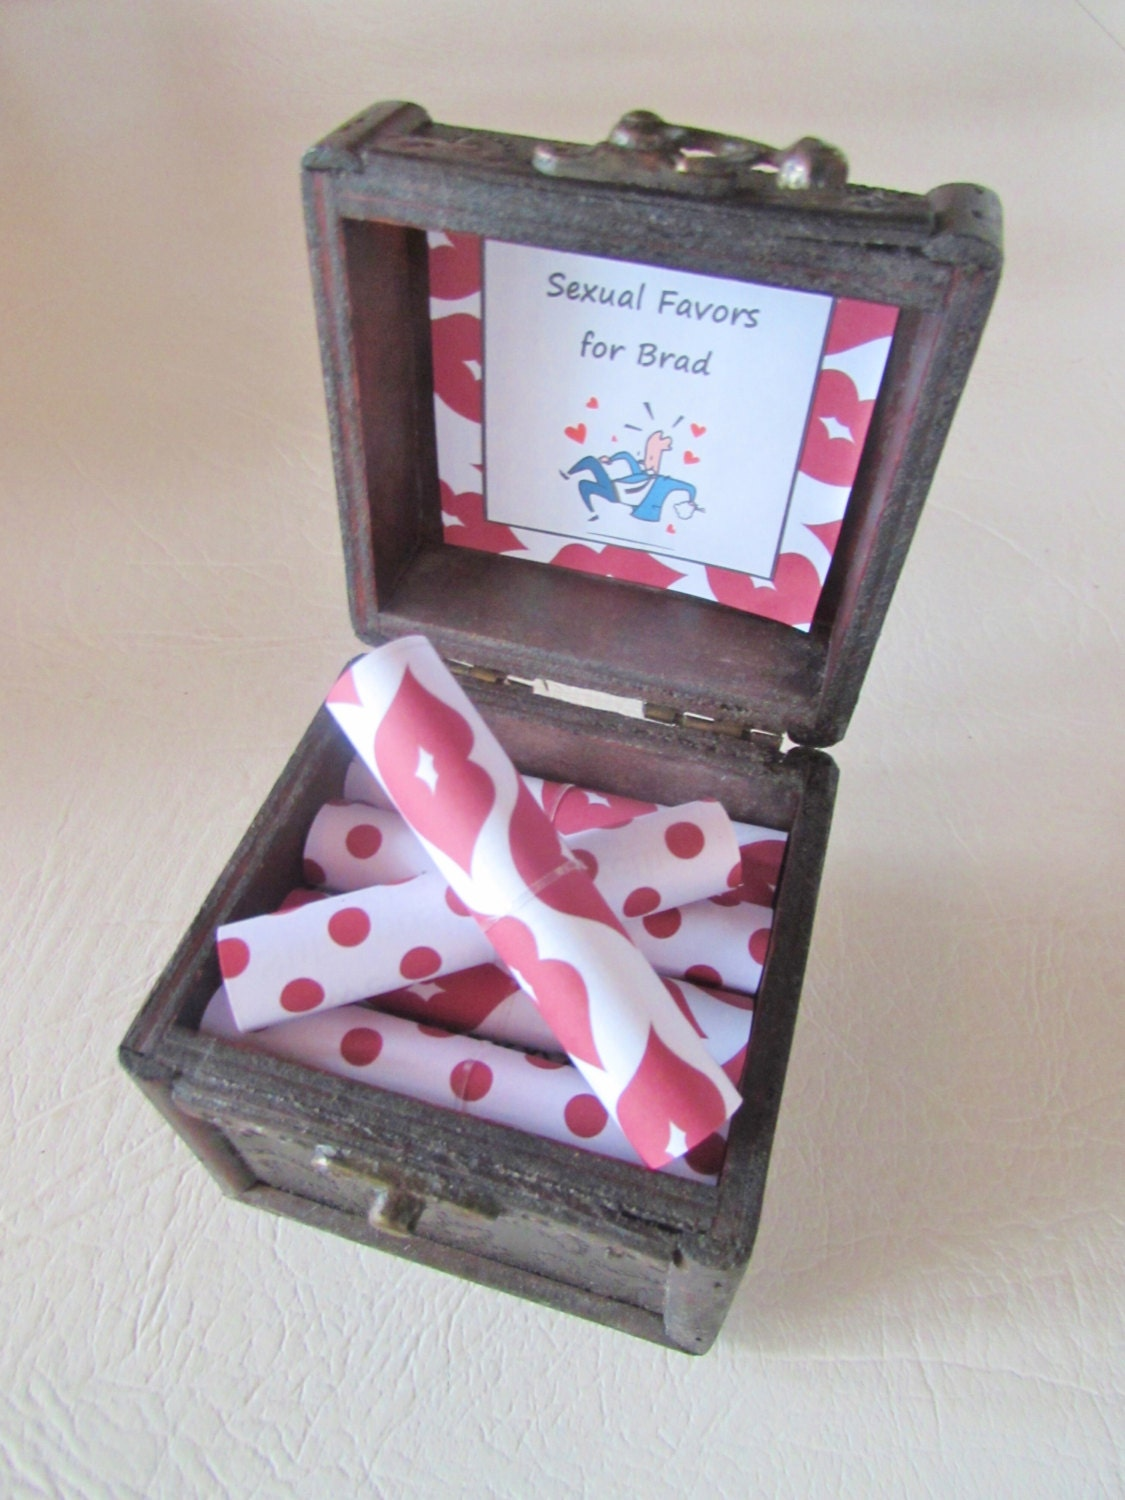 husband valentine boyfriend valentine valentine day gift sexual favors coupon book husband birthday boyfriend birthday husband gift